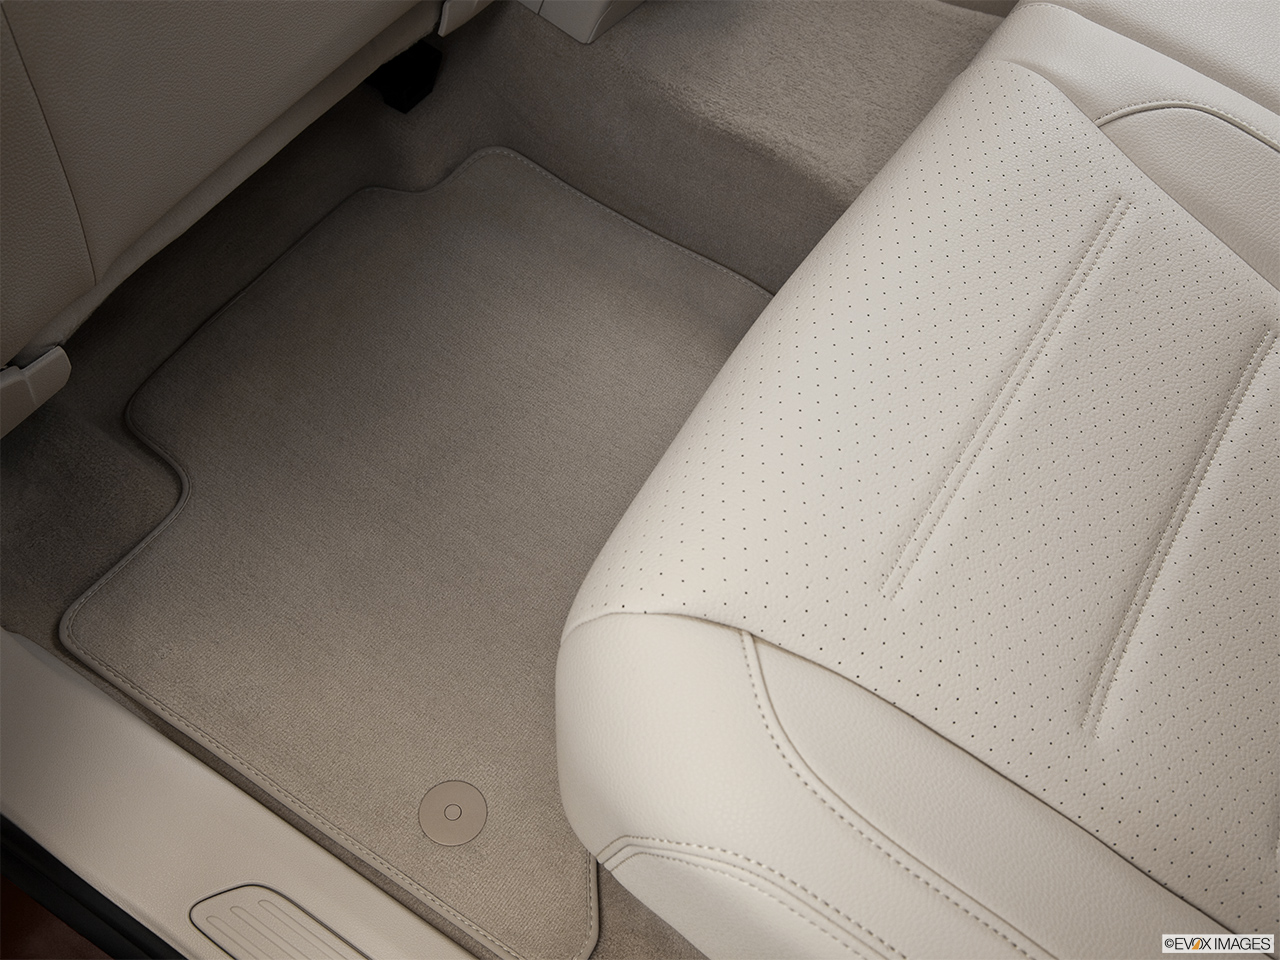 2014 Volkswagen Touareg 2 V6 Sport Rear driver's side floor mat. Mid-seat level from outside looking in.